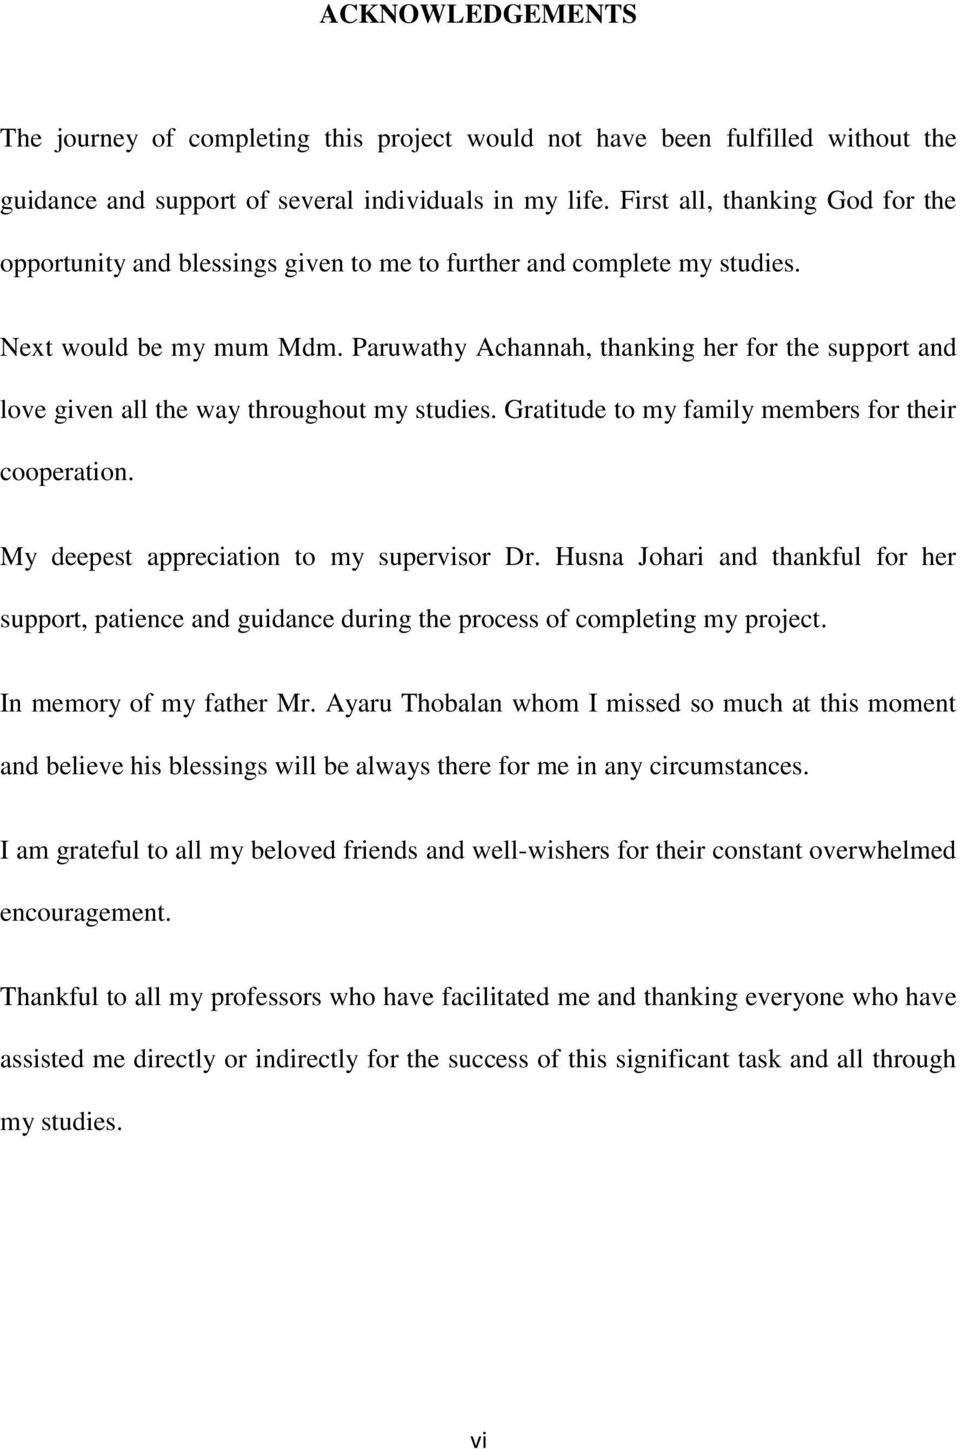 Paruwathy Achannah, thanking her for the support and love given all the way throughout my studies. Gratitude to my family members for their cooperation. My deepest appreciation to my supervisor Dr.